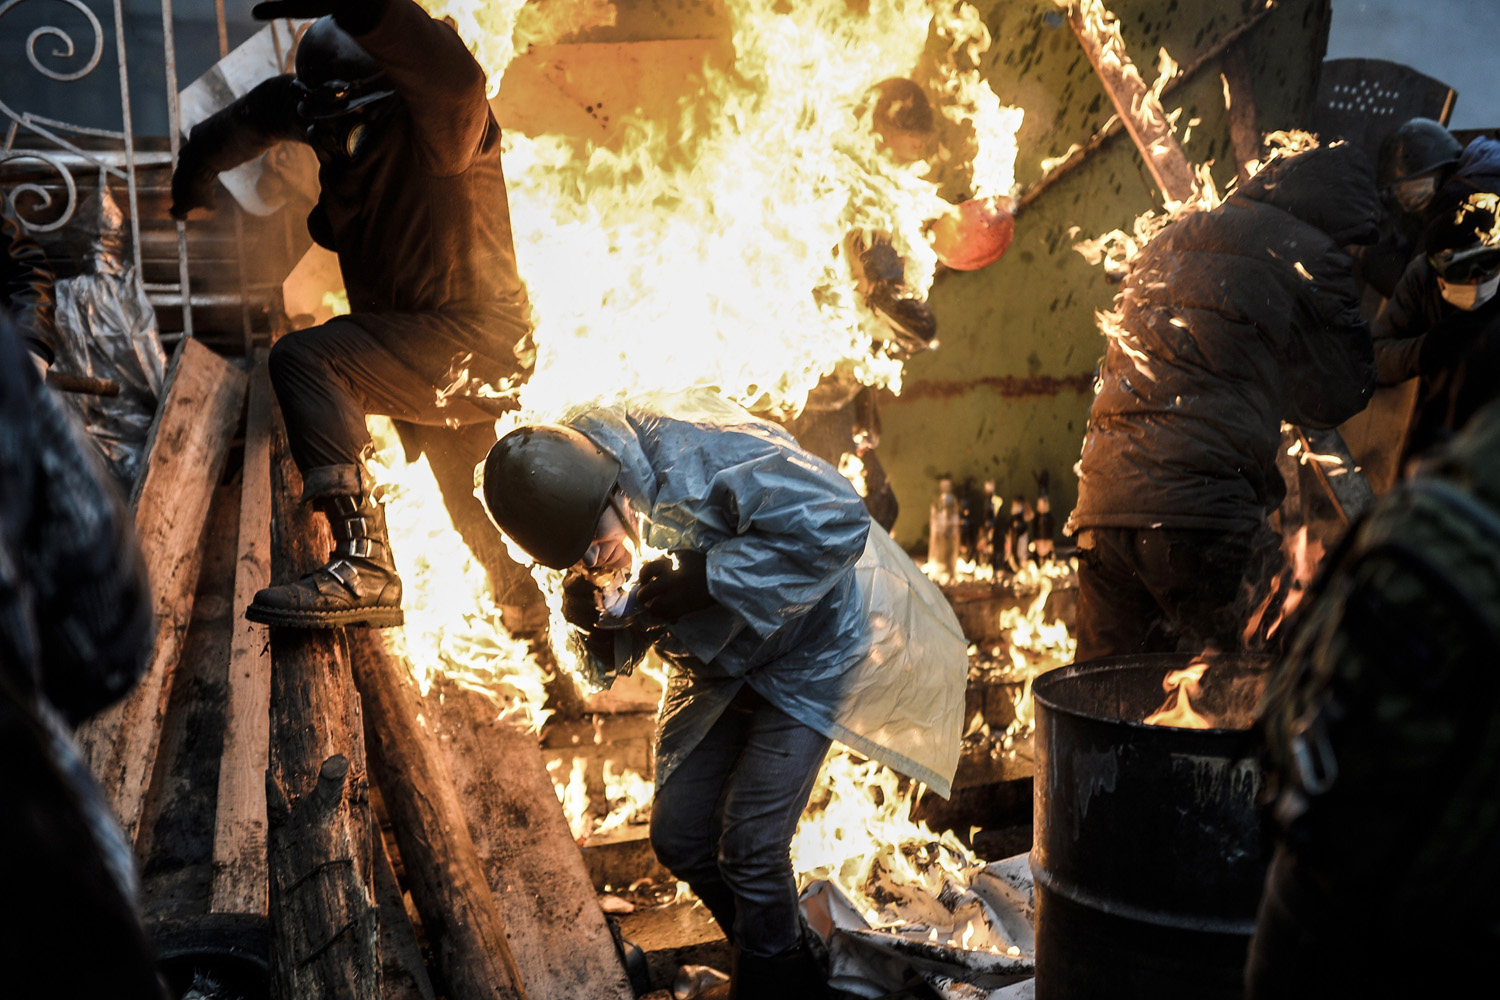 Protesters burn as they stand behind burning barricades during clashes with police in Kiev, Ukraine, Feb. 20, 2014.